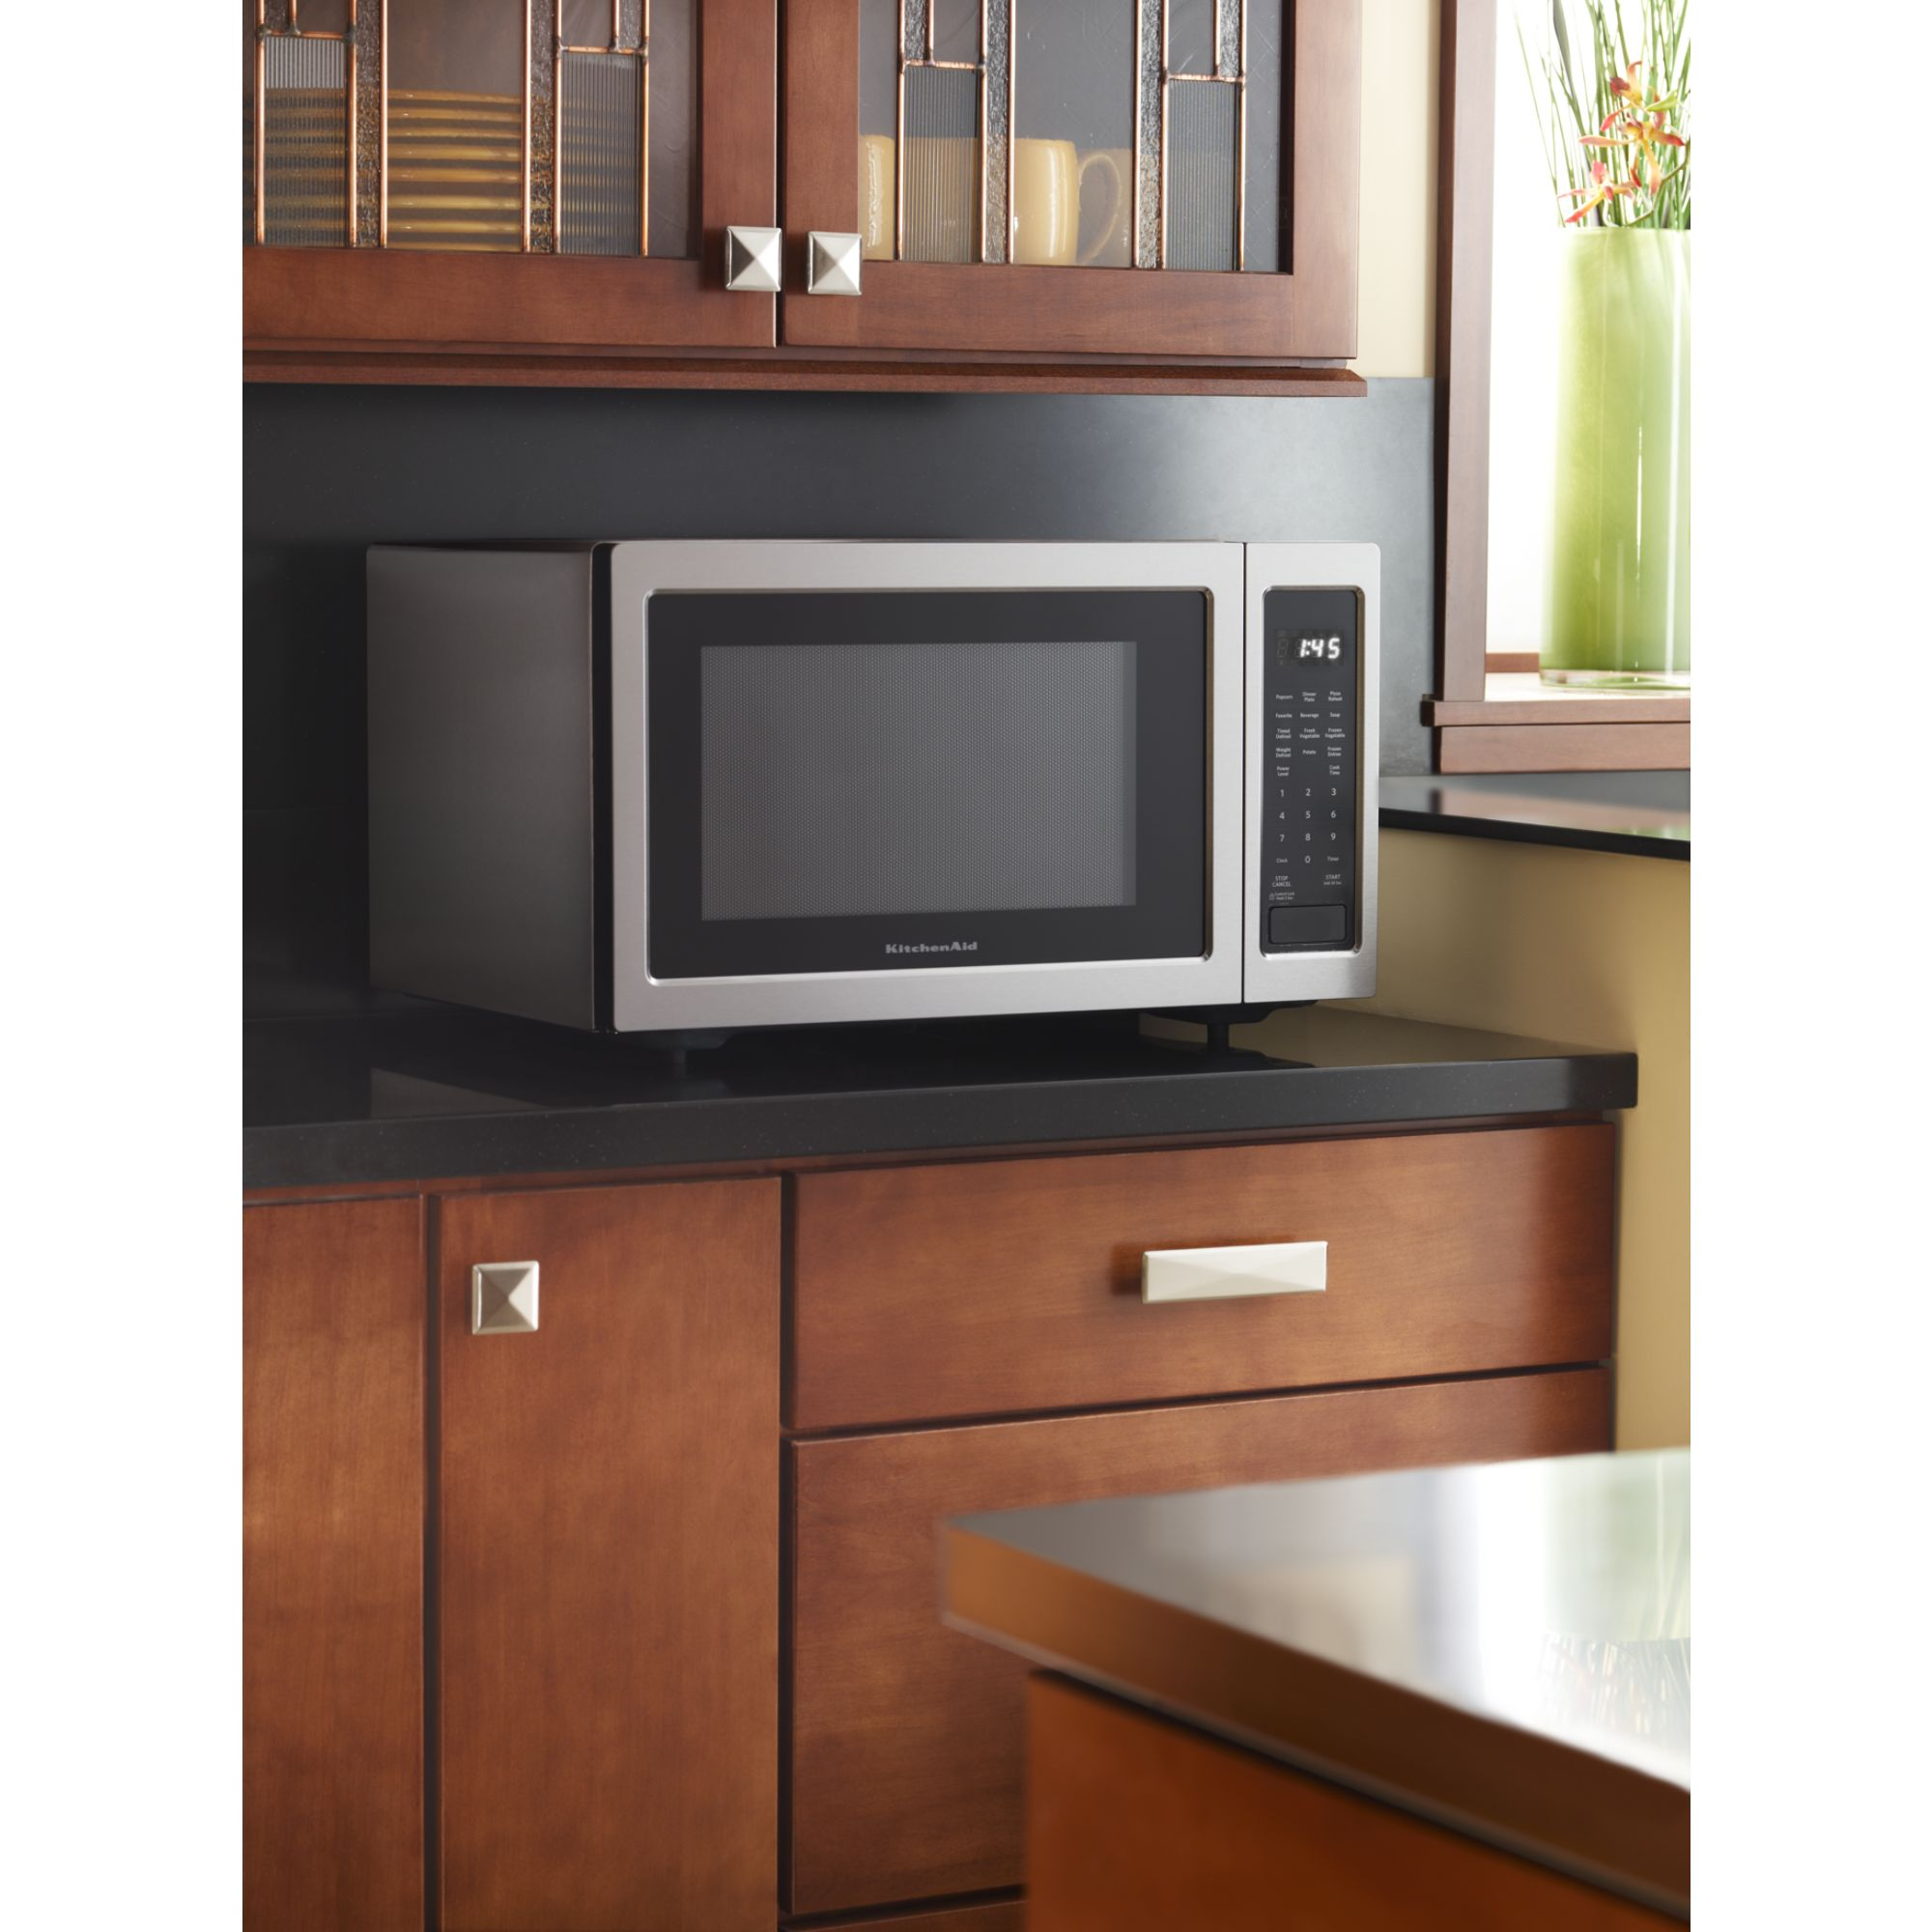 KitchenAid KCMS1655BSS 1.6 cu. ft. 1,200W Countertop Microwave Oven - Stainless Steel